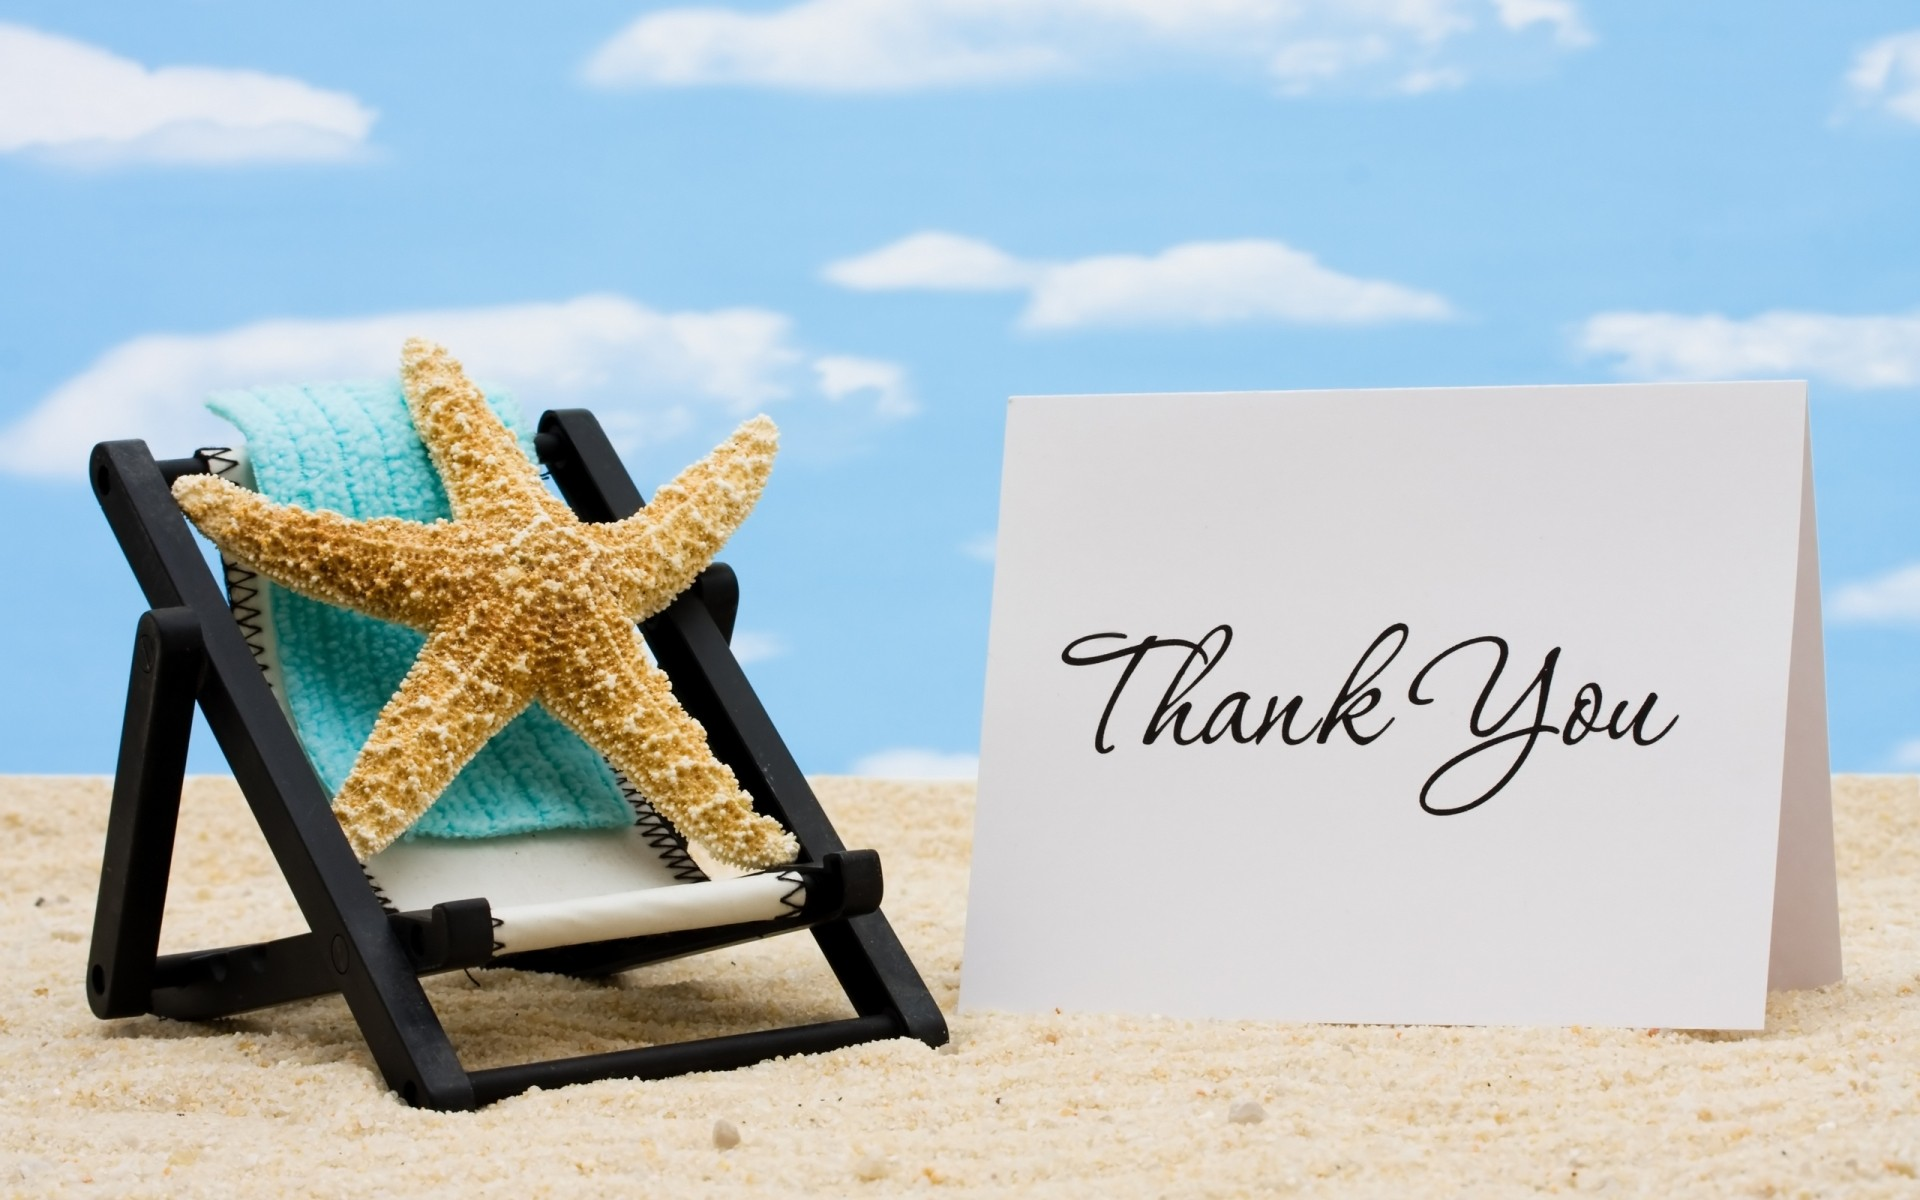 Thank You Summer Desktop Wallpapers For Free